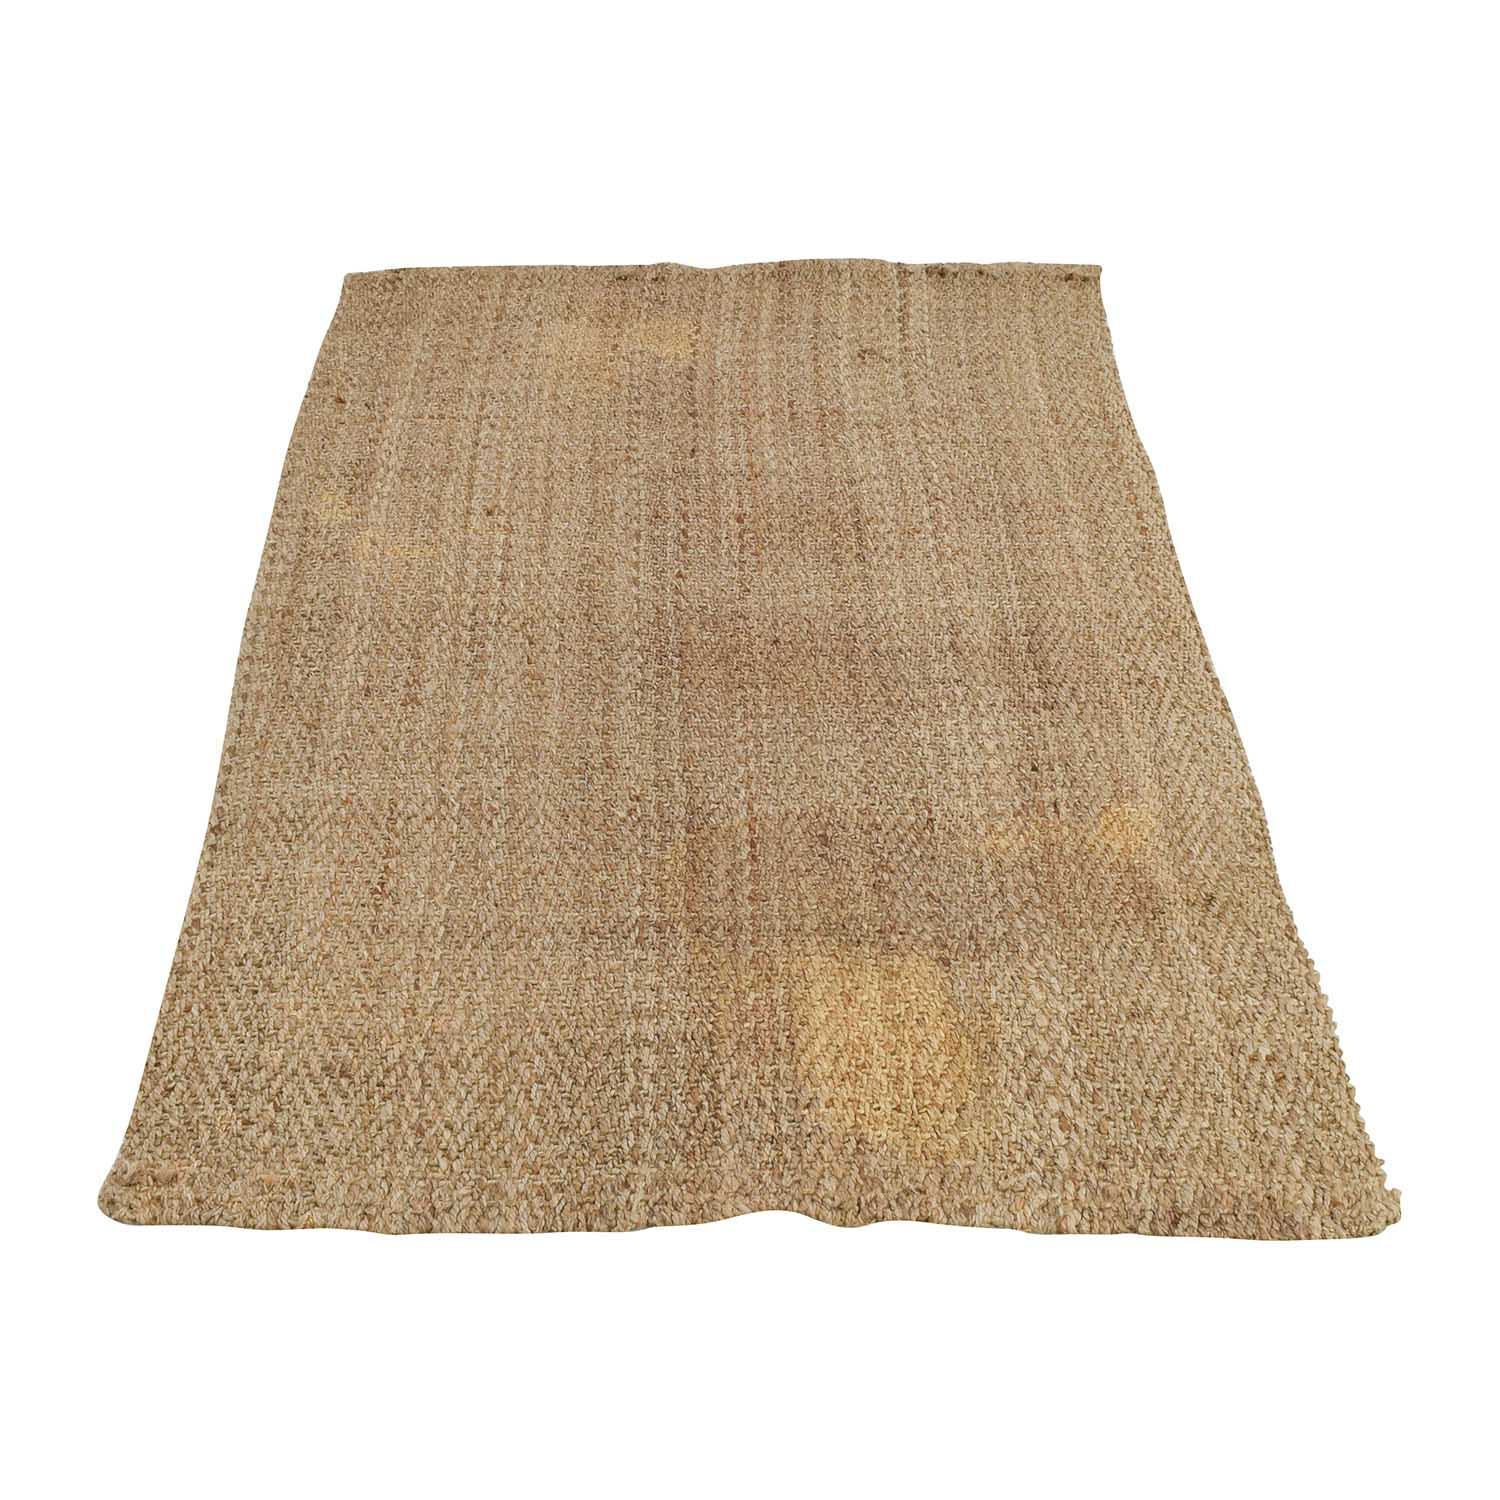 shop Pottery Barn Pottery Barn Rug online